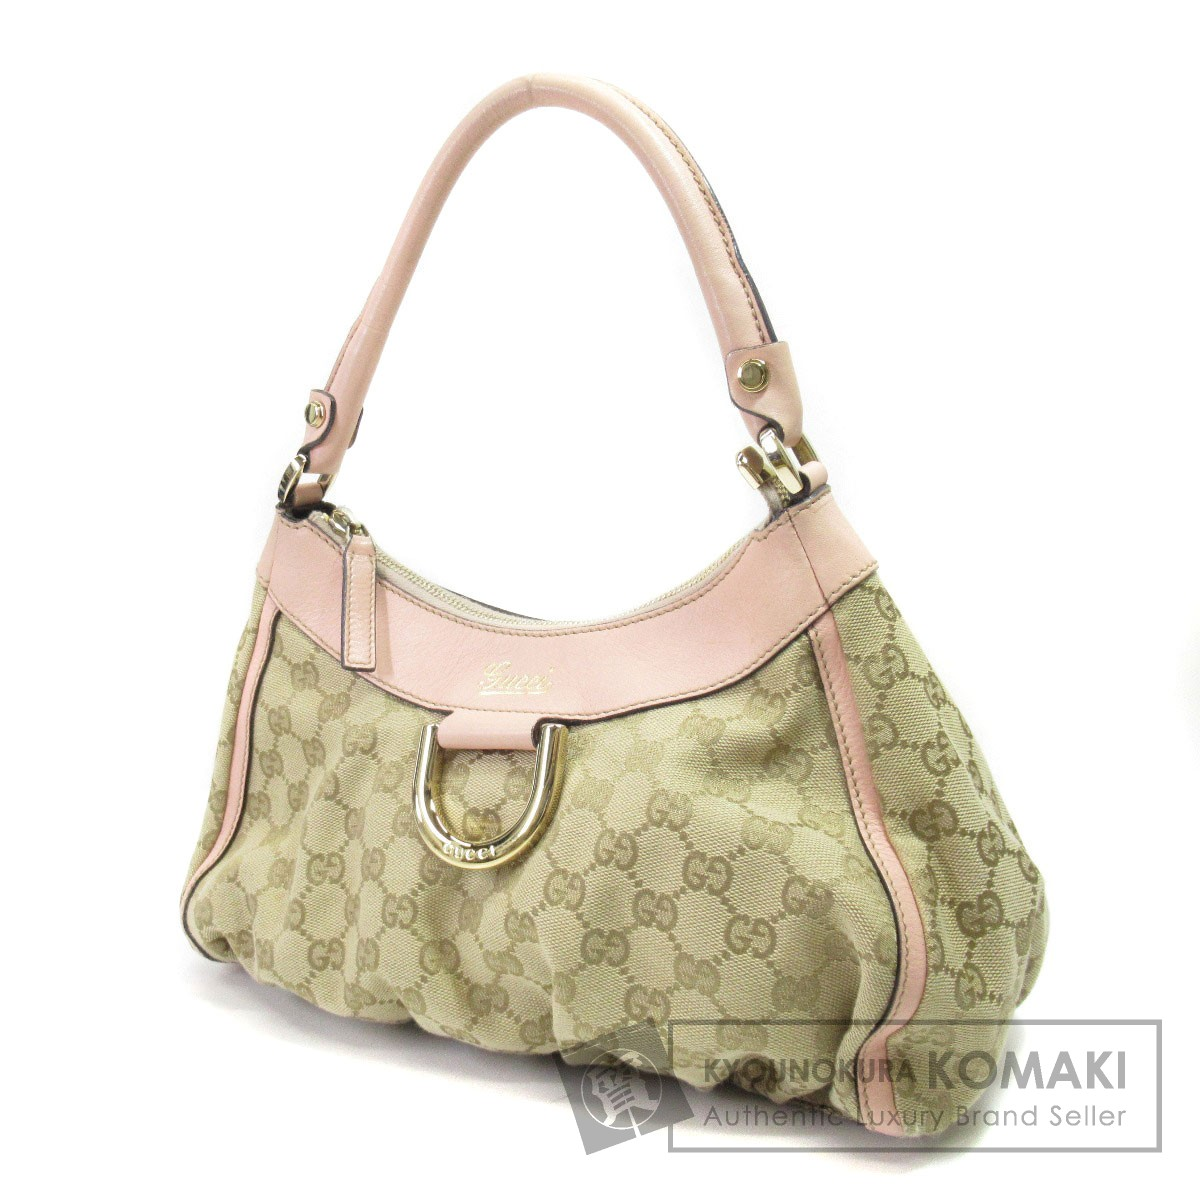 GUCCI 190525 001013 キャンバス GG柄 ハンドバッグ キャンバス レディース GG柄【中古】 001013【グッチ】, チヨダク:beb0230a --- acee.org.ar